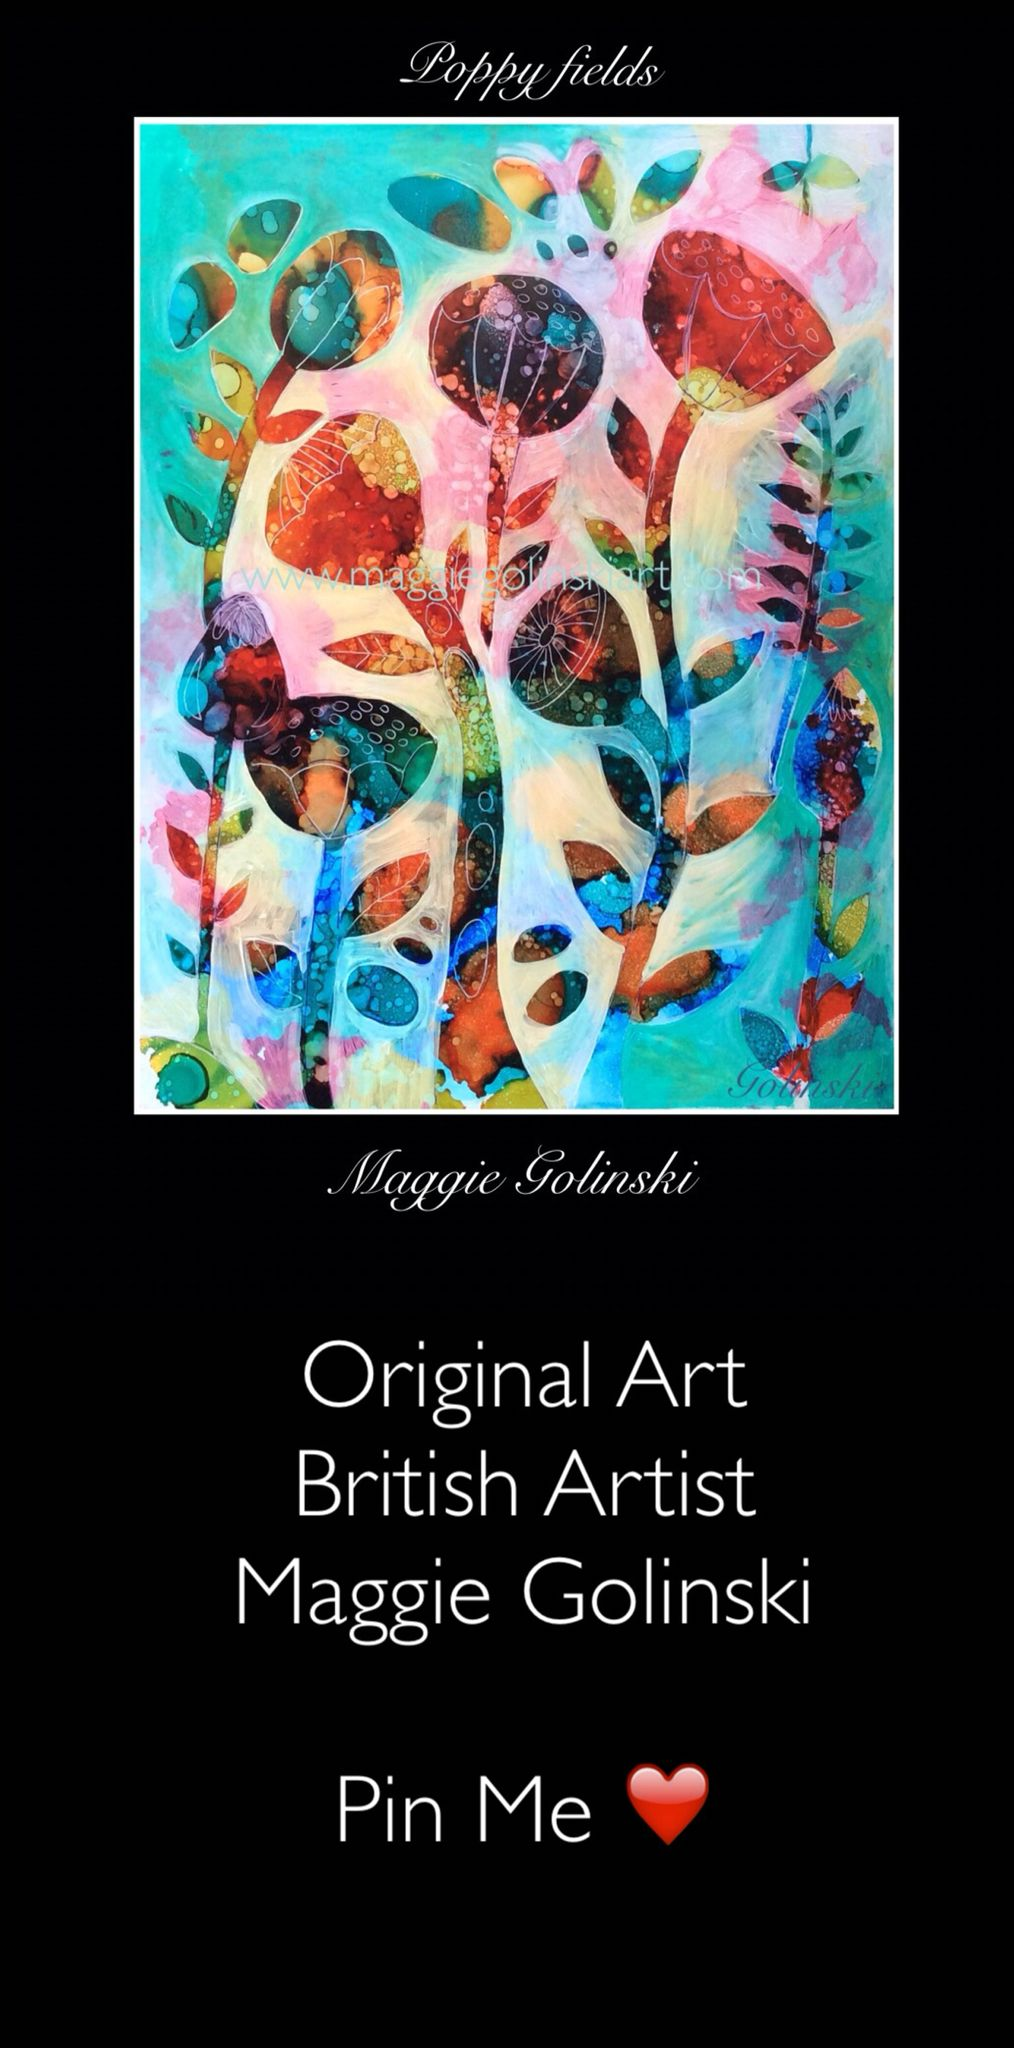 For fabulous original art by British artist Maggie Golinski visit her Etsy store. Great ideas for home decor. Pin for later #alcoholinkart #originalart #britishartist #homedecorideas #art #alcoholinkpainting #smallpaintings #abstractart #contemporary art